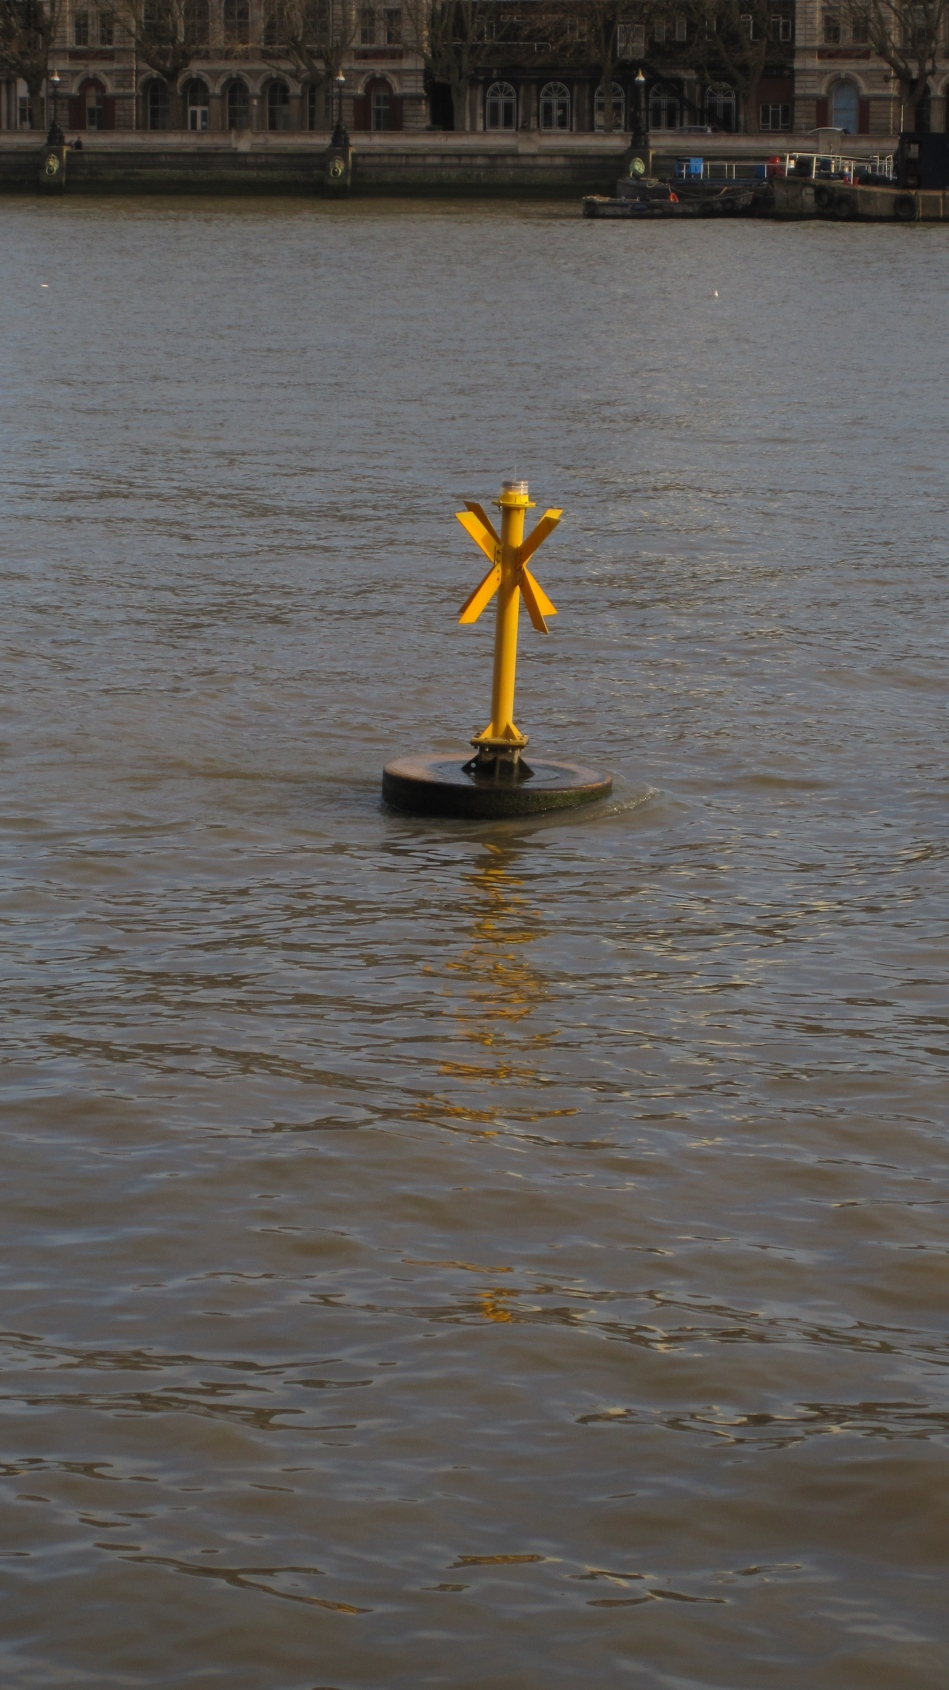 Buoy on the Thames, London, UK